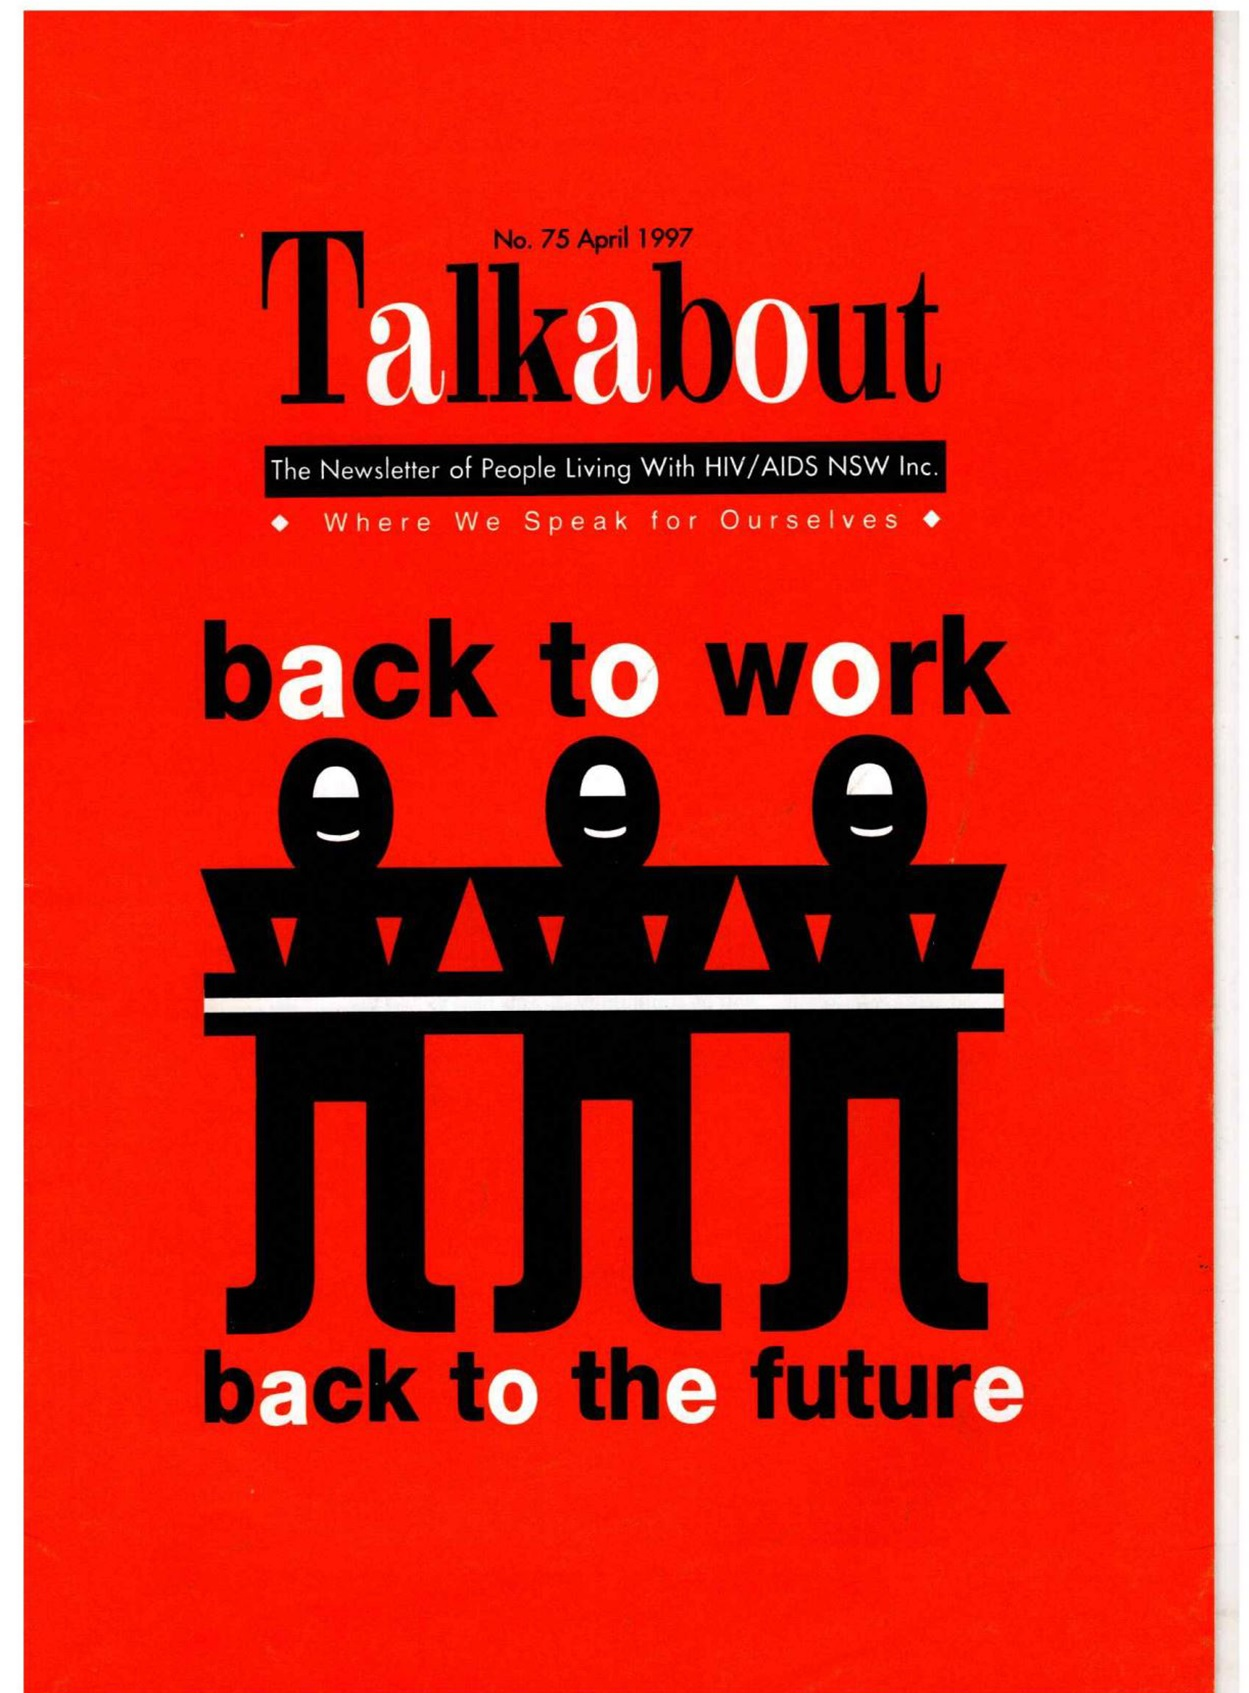 Talkabout Edition #75